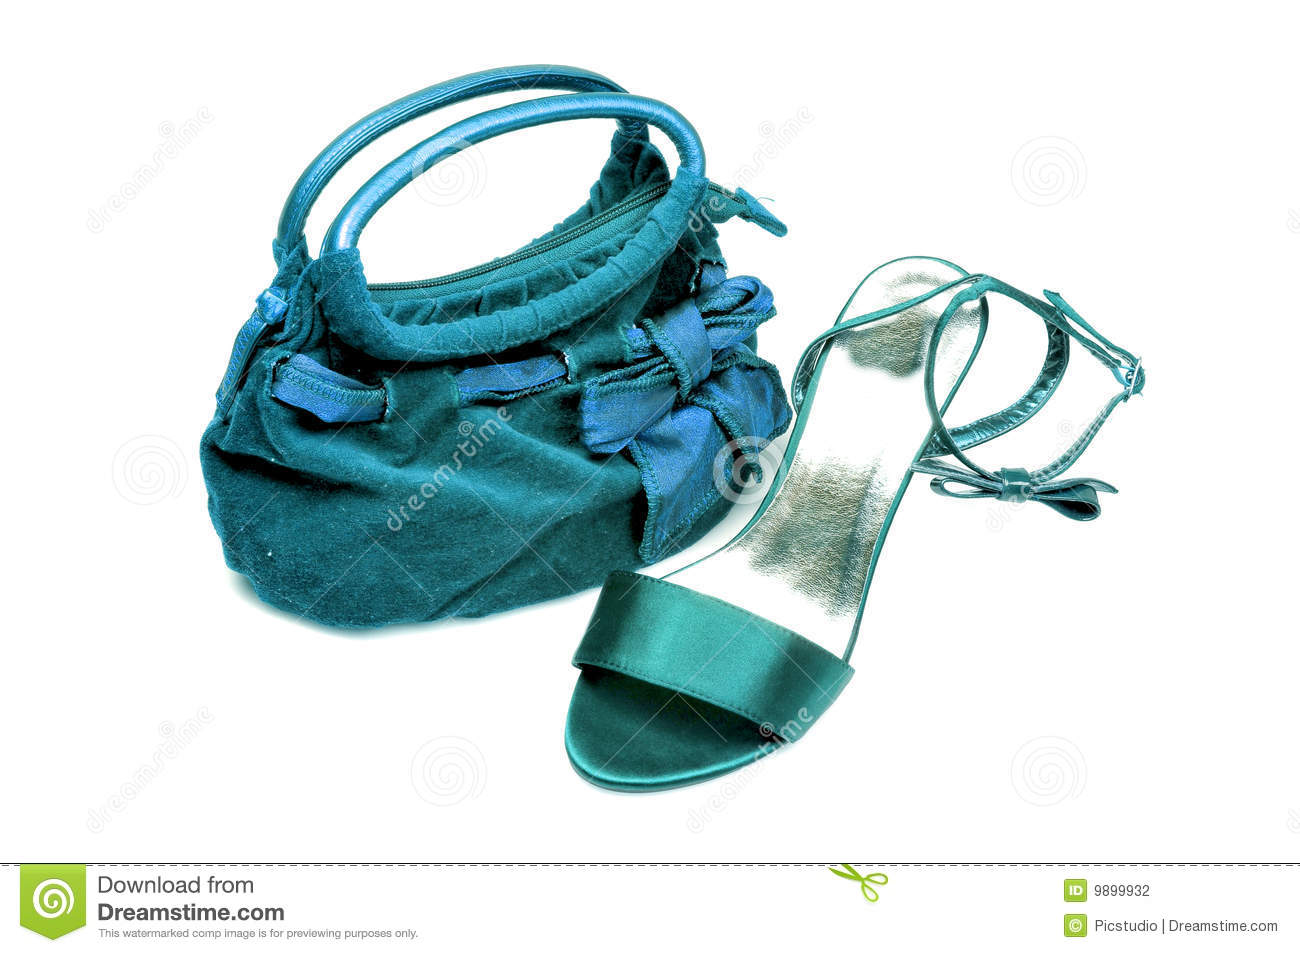 Ladies purse and sandle isolated on white background